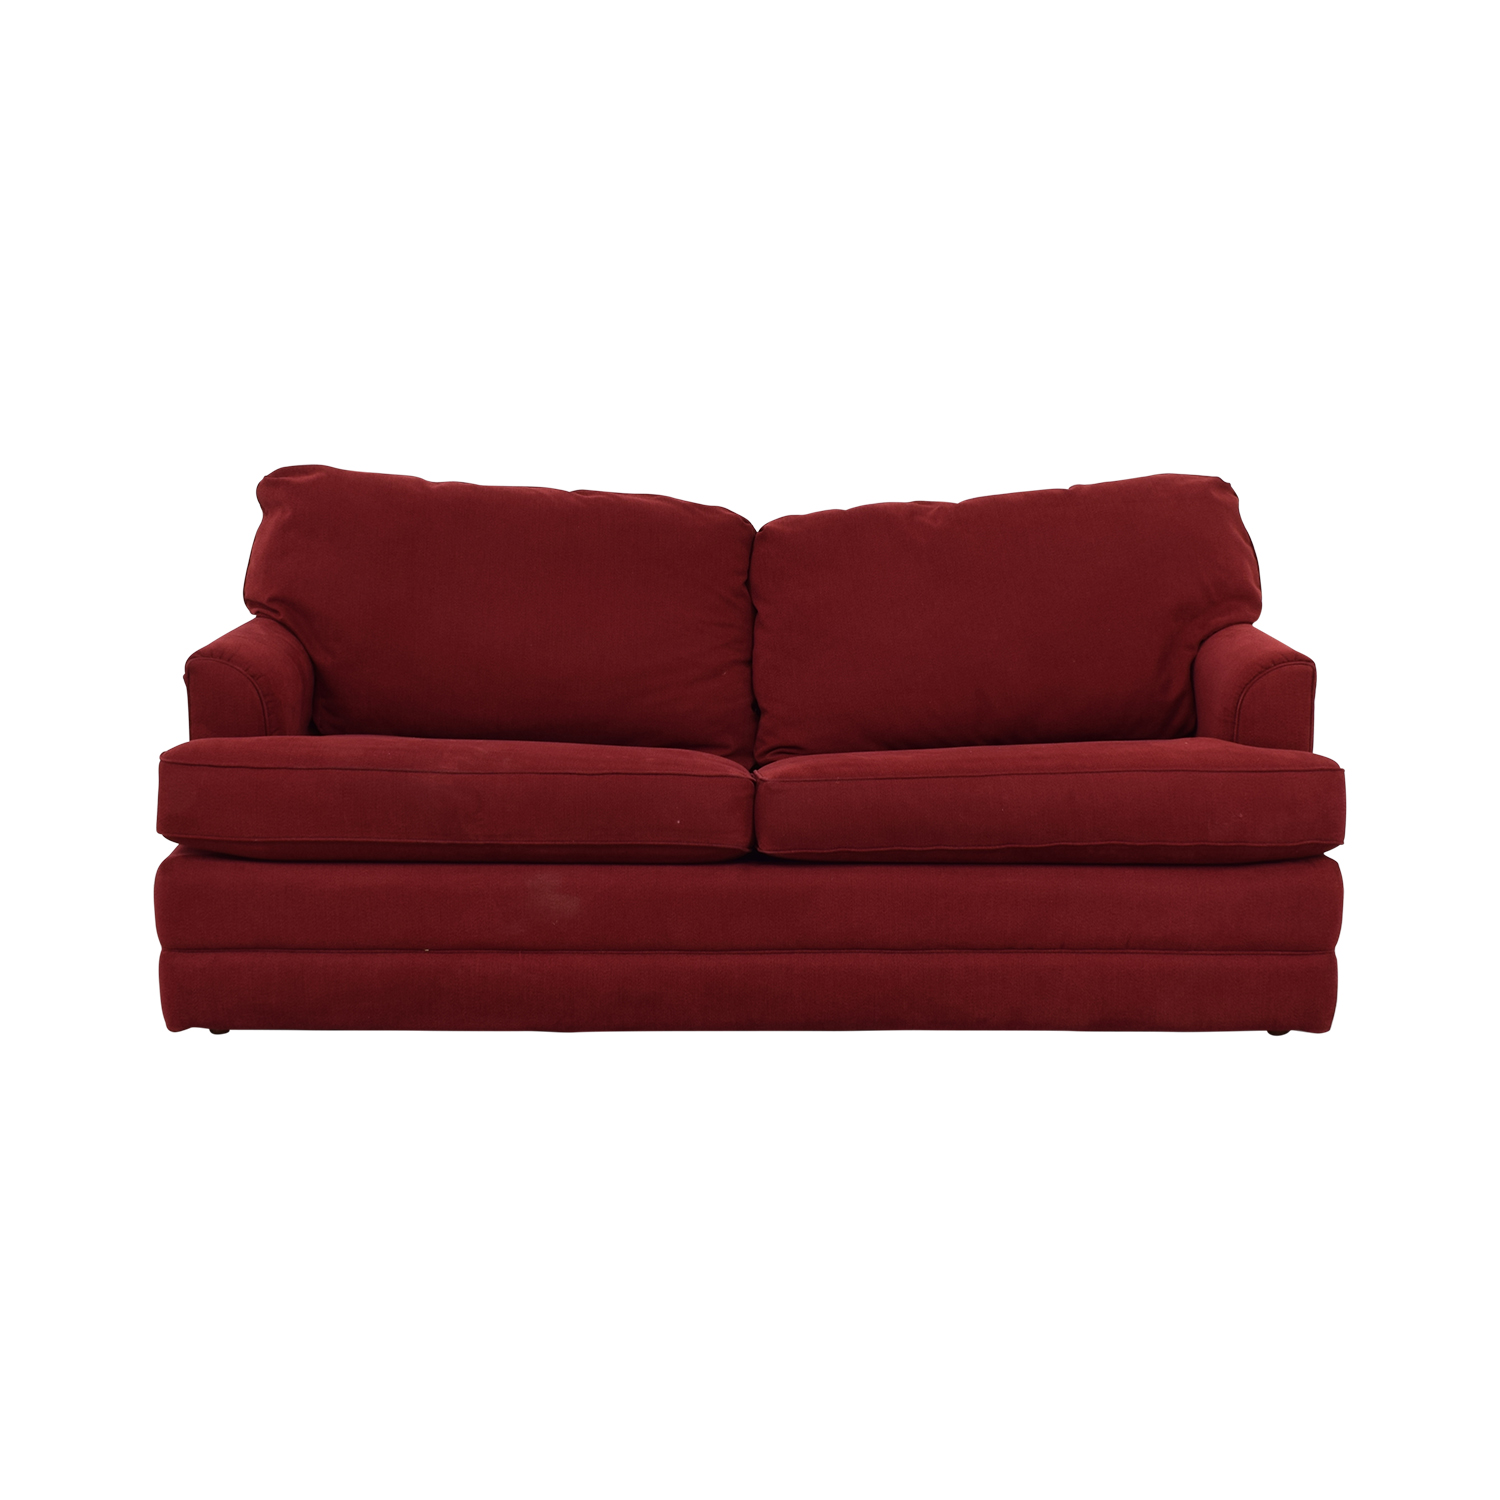 90 Off La Z Boy La Z Boy Red Convertible Queen Sleeper Sofa Sofas